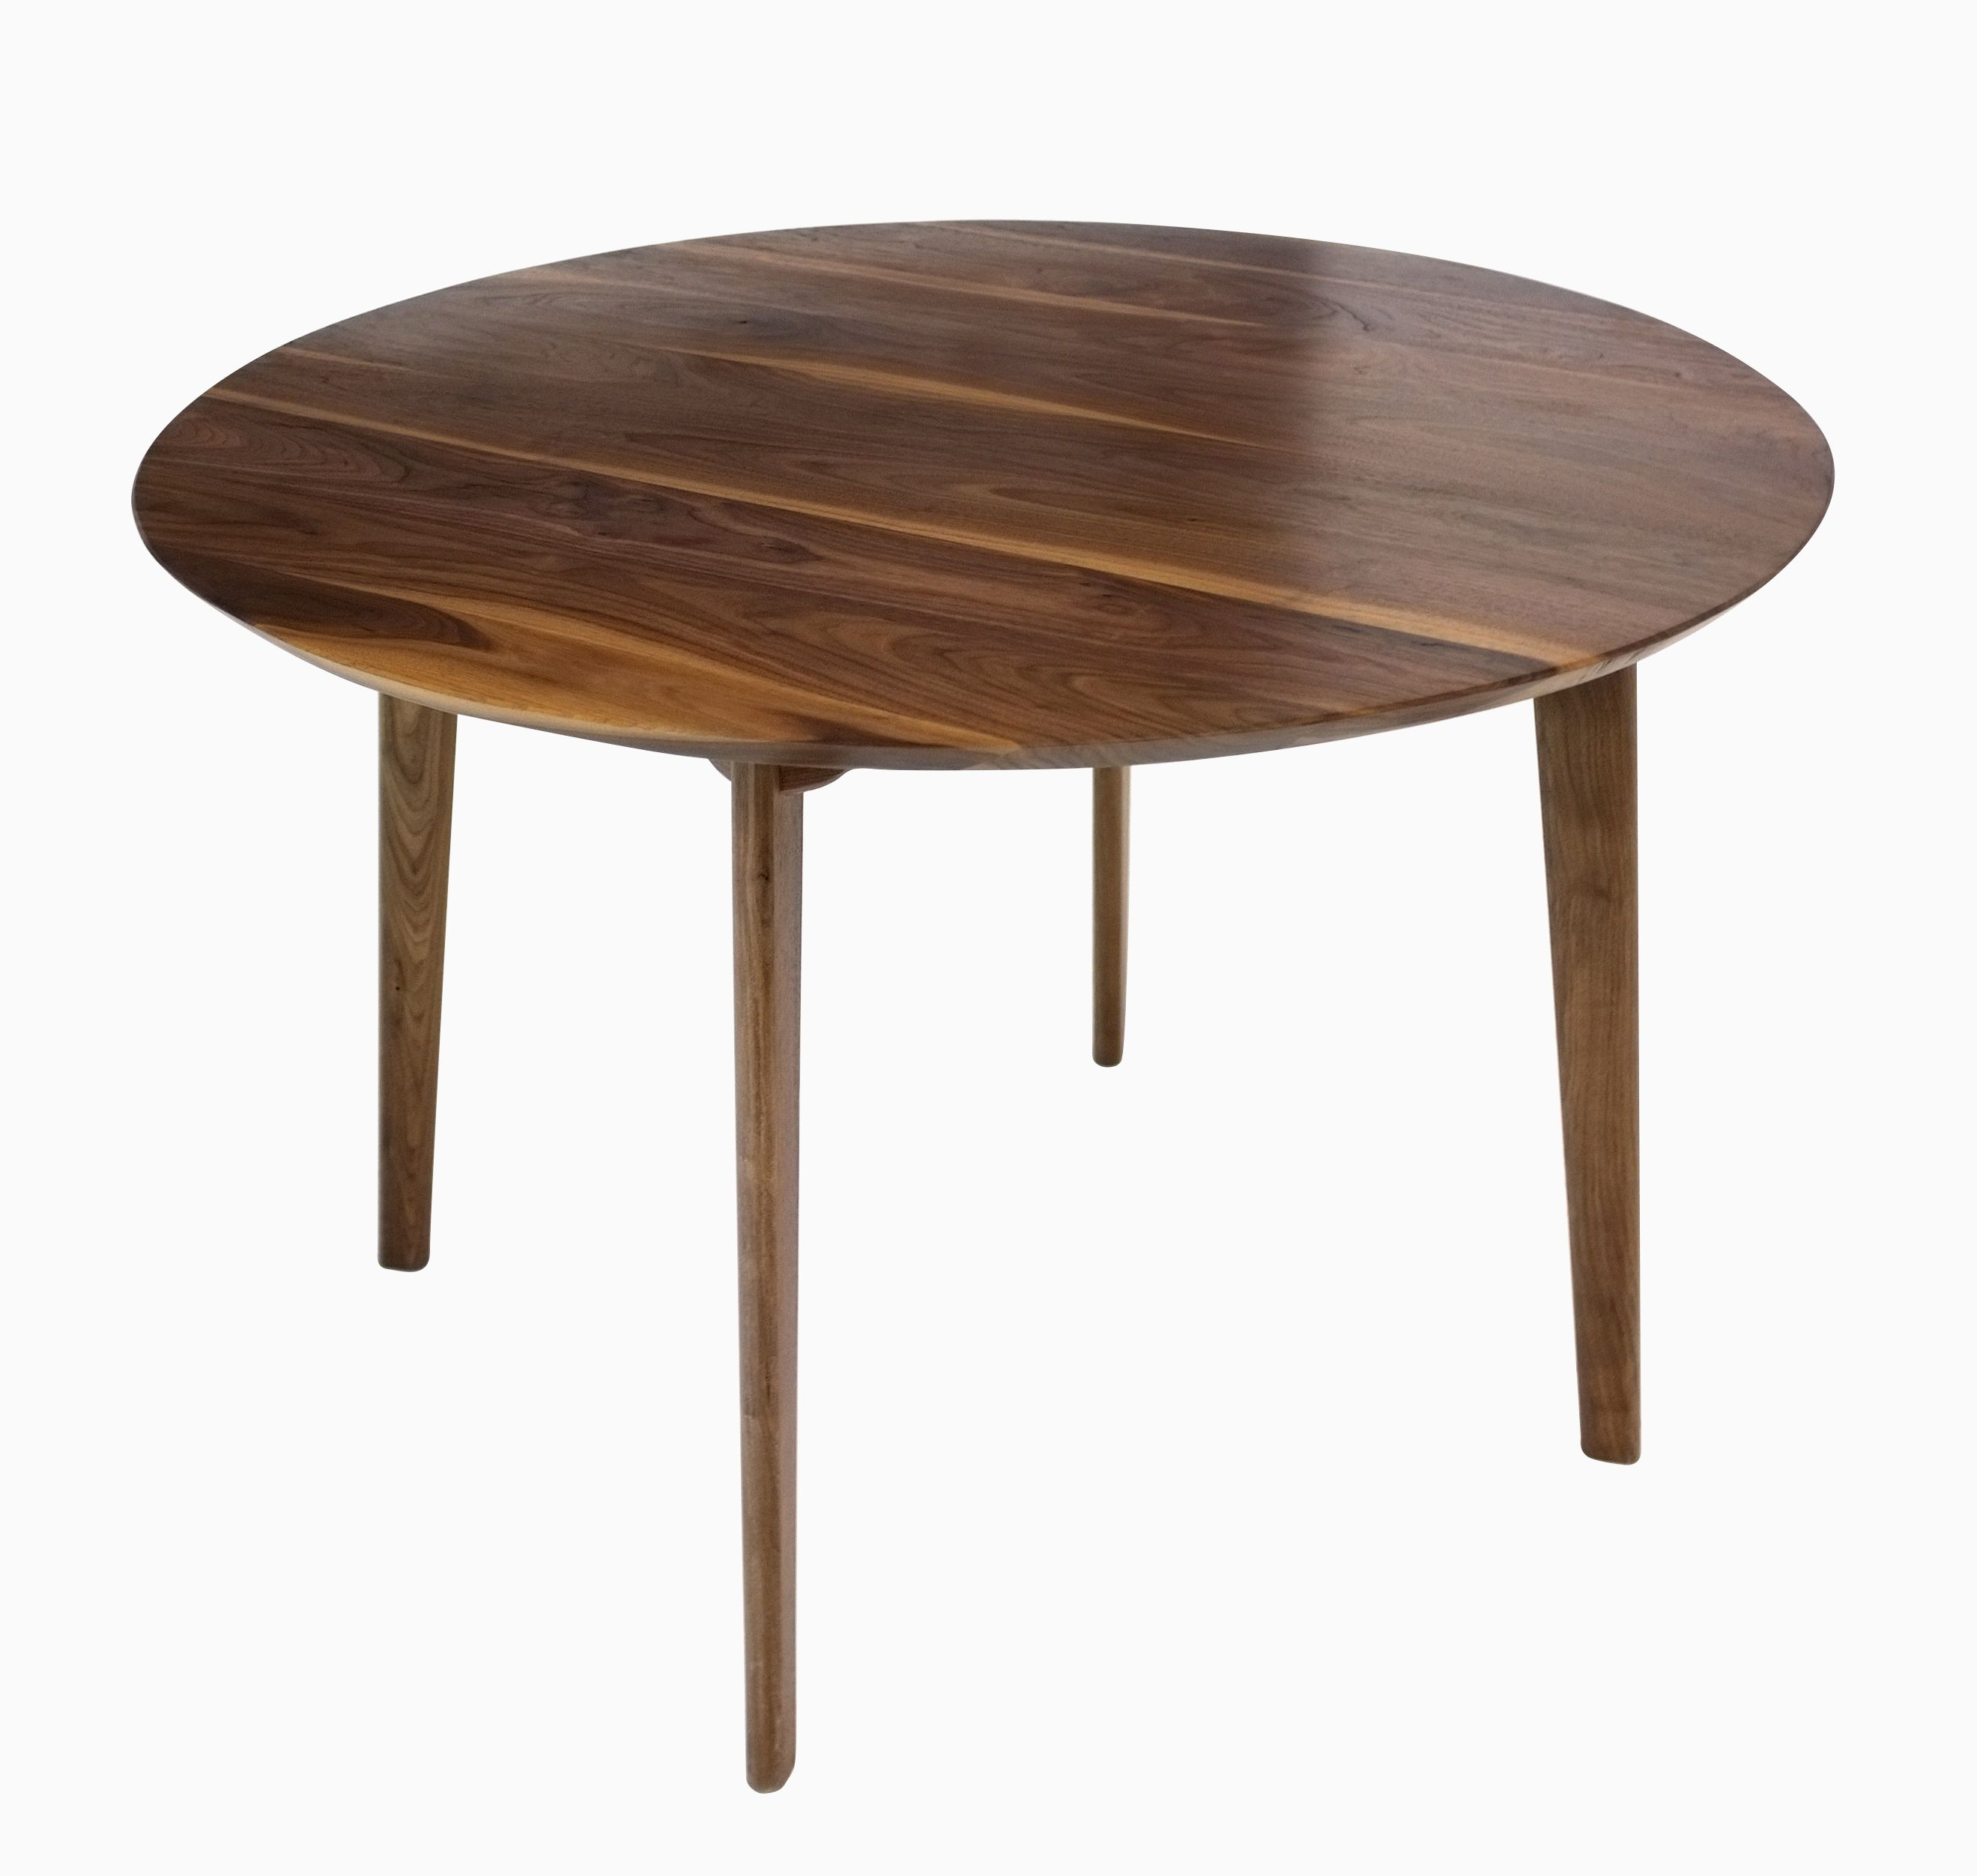 Buy a Custom Made Isabelle Mid Century Modern Solid Round  : 106264933825 from www.custommade.com size 2639 x 2504 jpeg 241kB